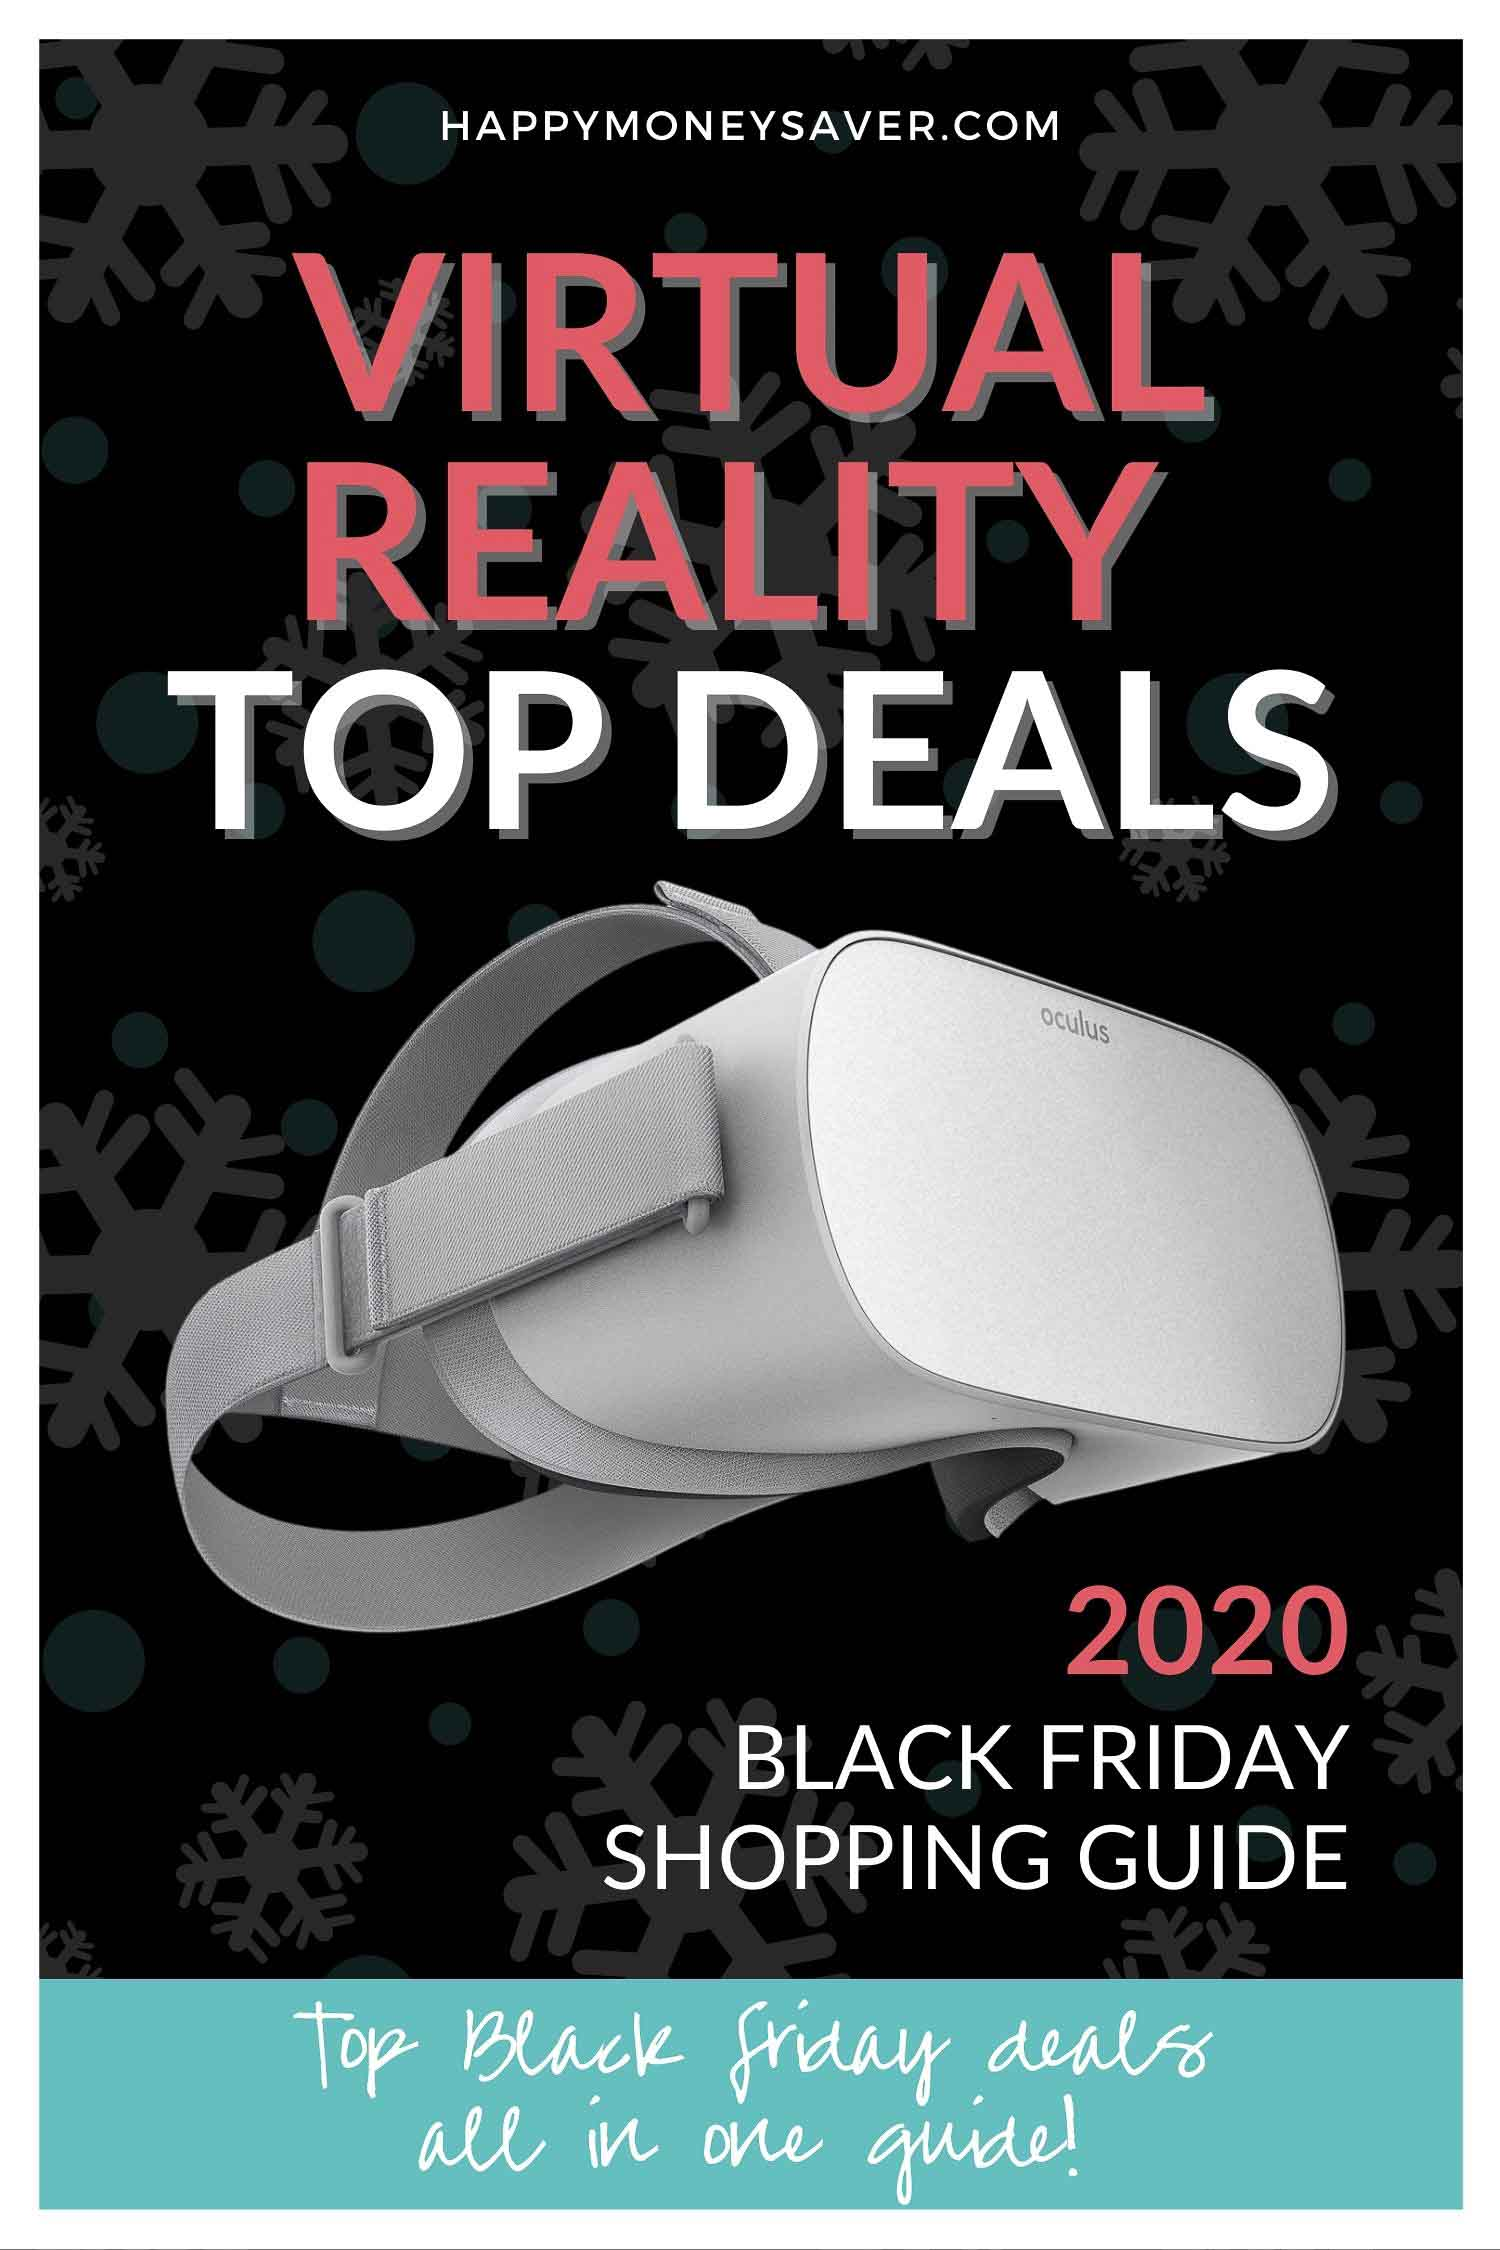 black friday virtual reality deals 2020 including ps4, oculus rift, bundles and more.